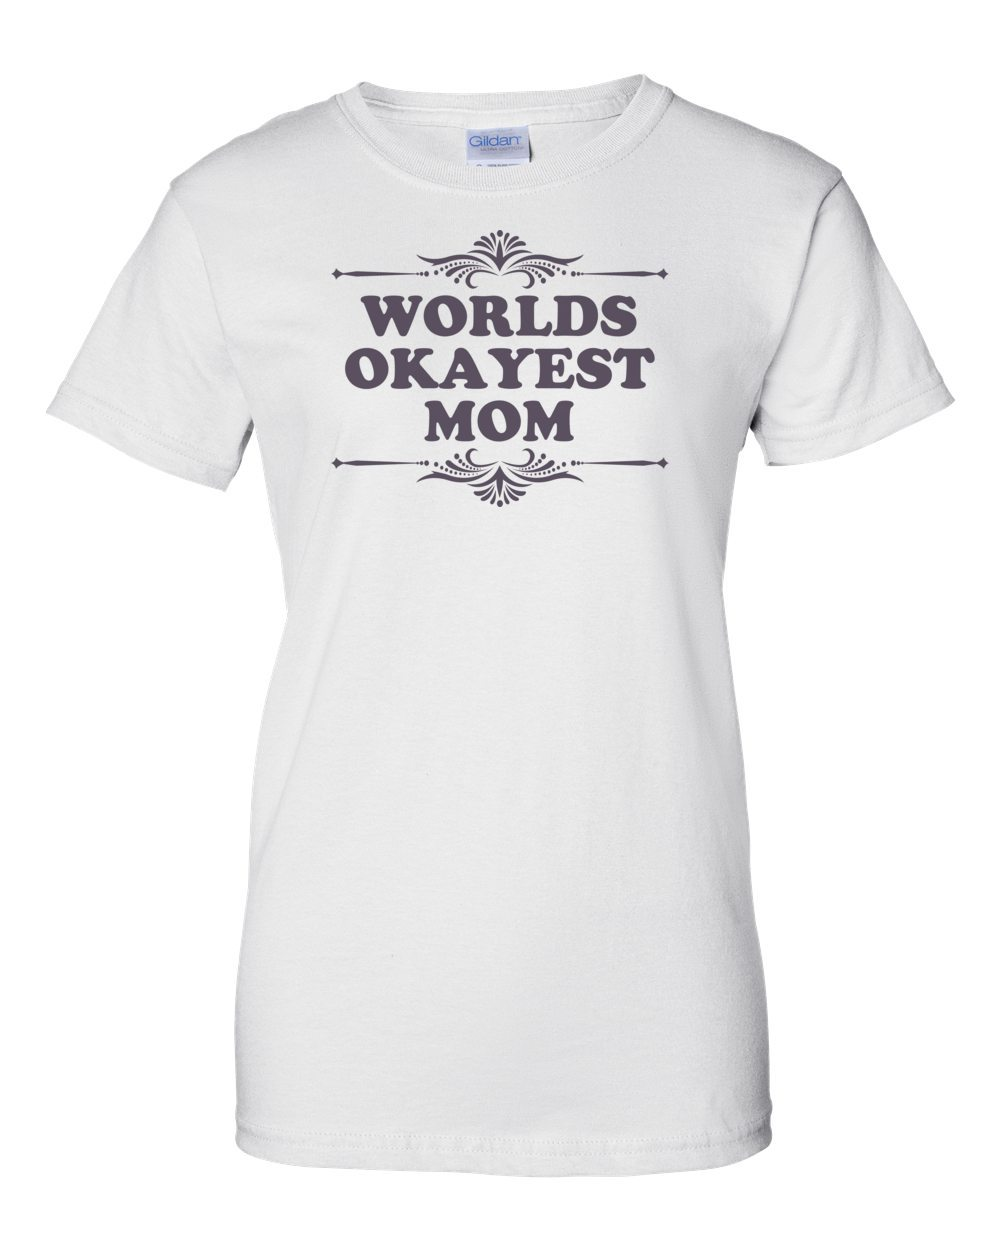 9dd1fa96 worlds-okayest-mom-funny-tshirt-womens-regular-white.jpg